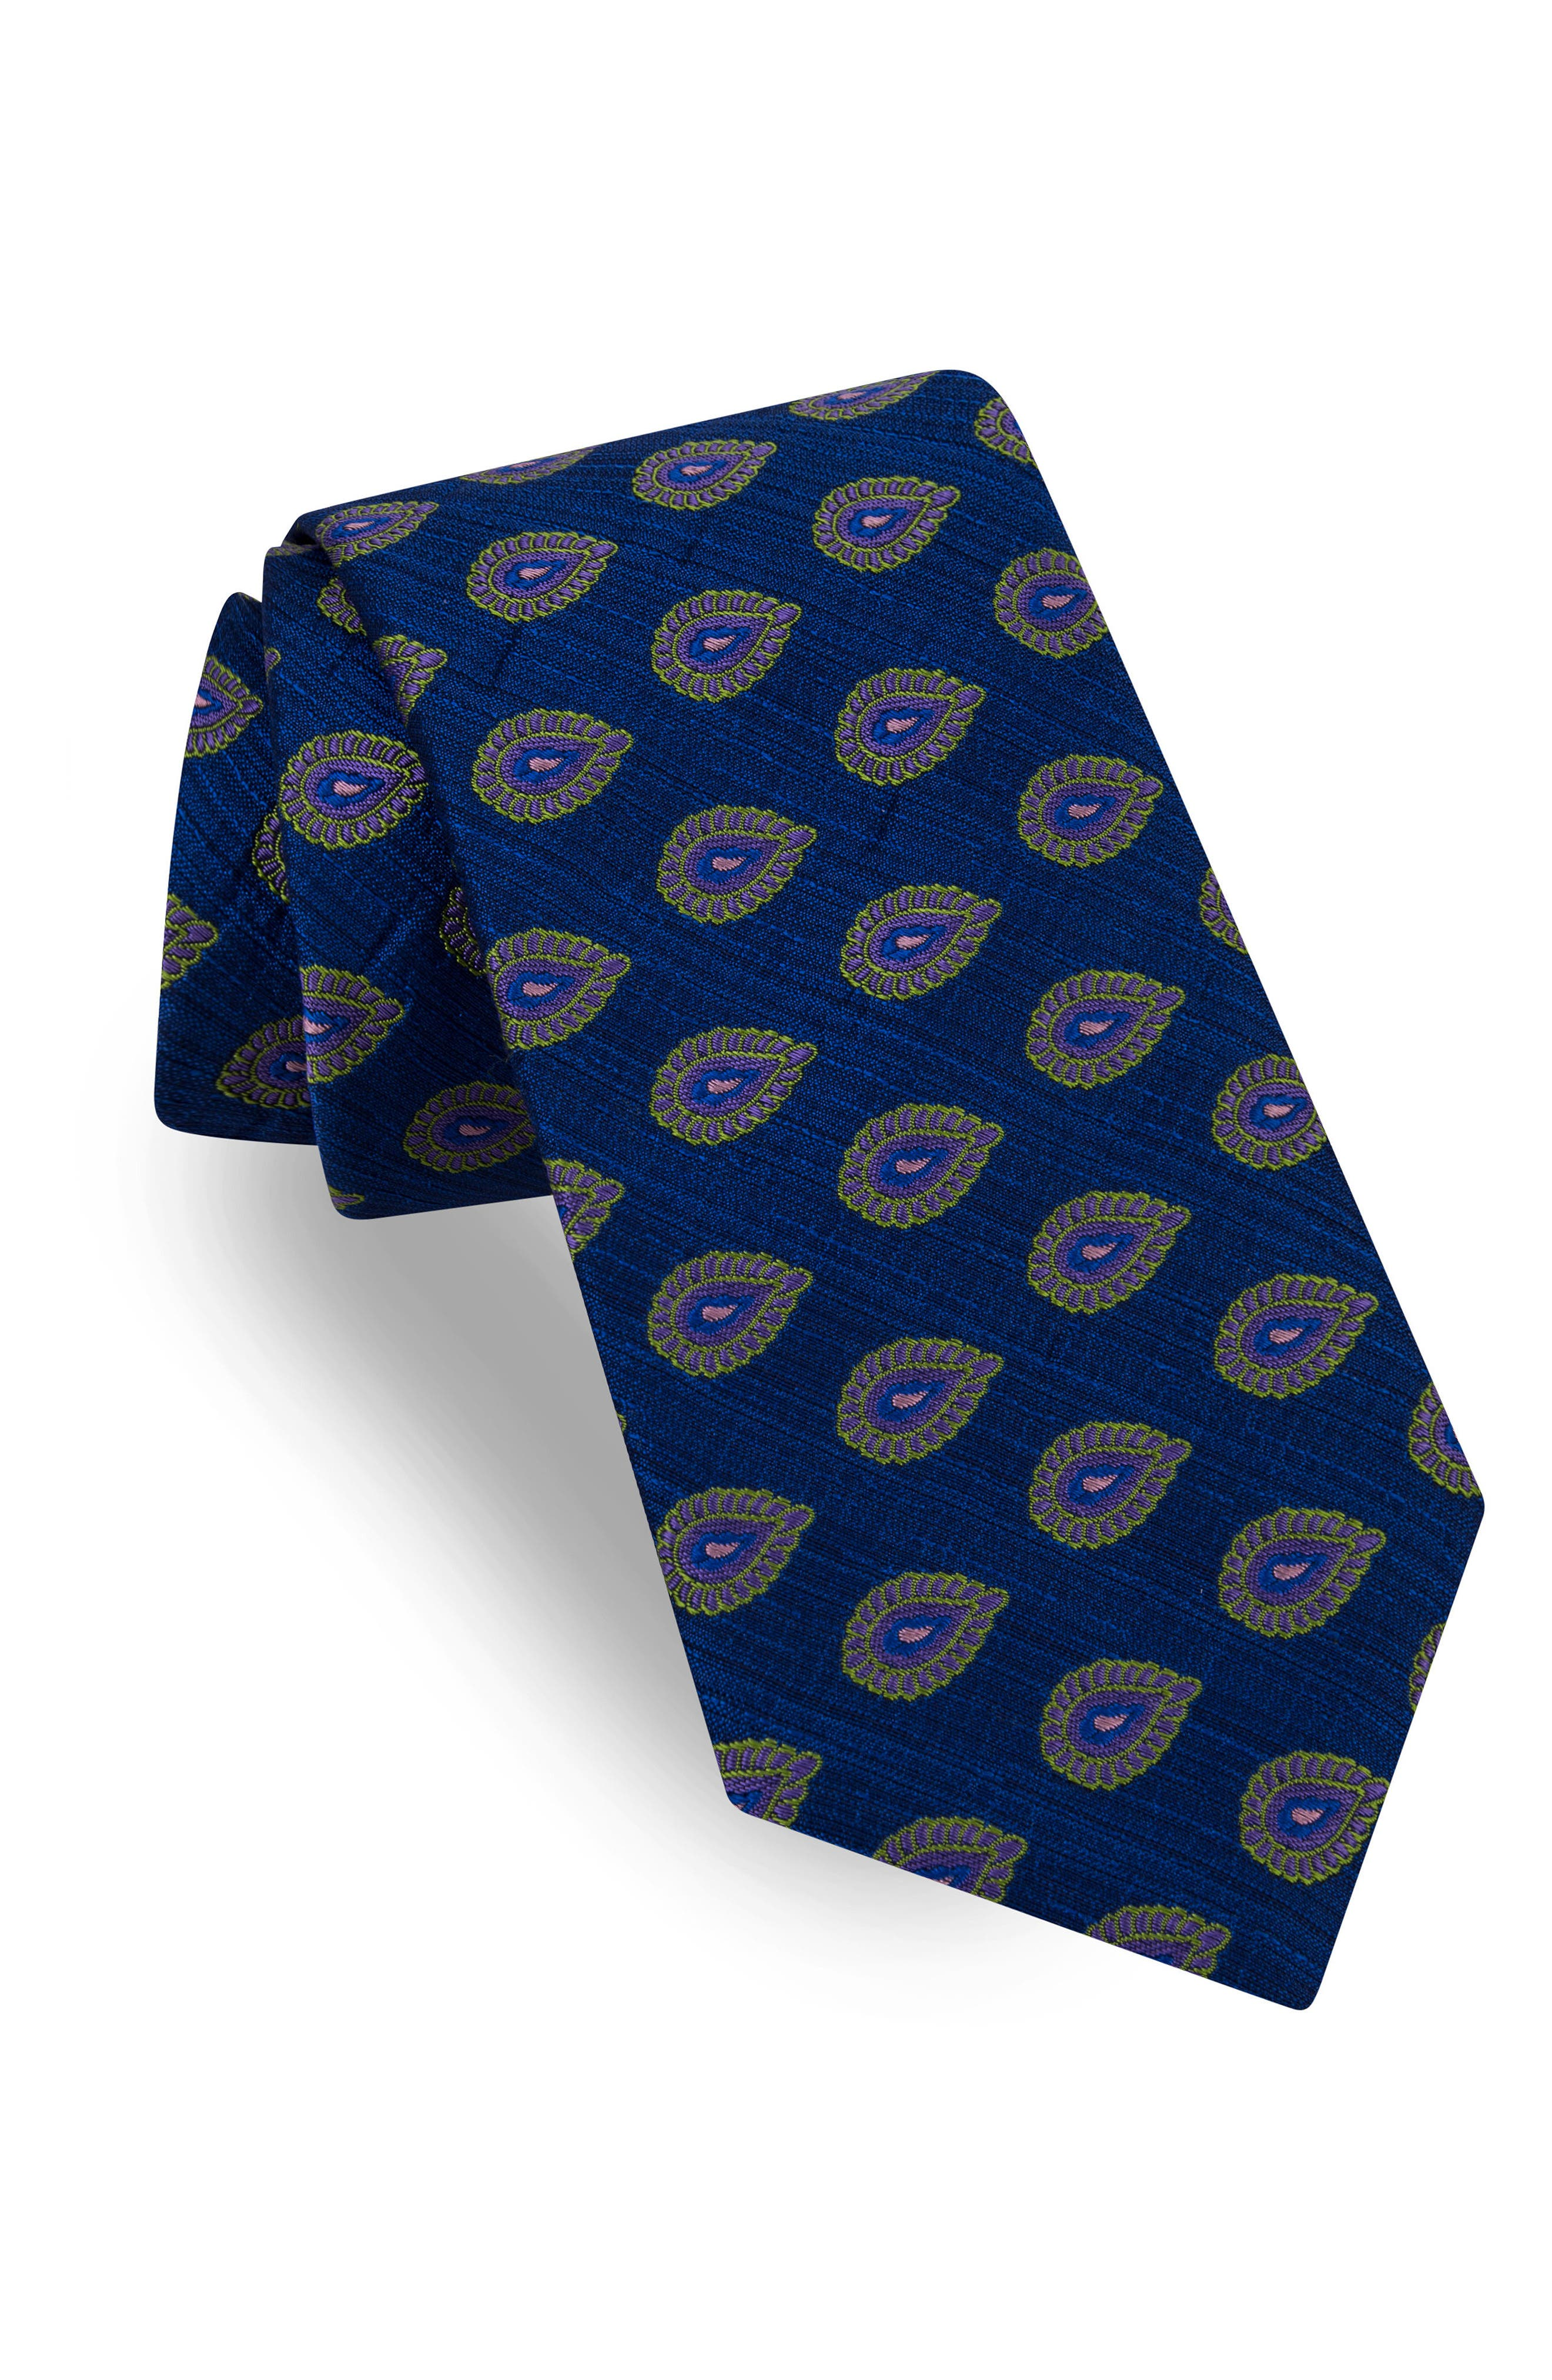 Superb Paisley Silk Tie,                             Main thumbnail 1, color,                             411